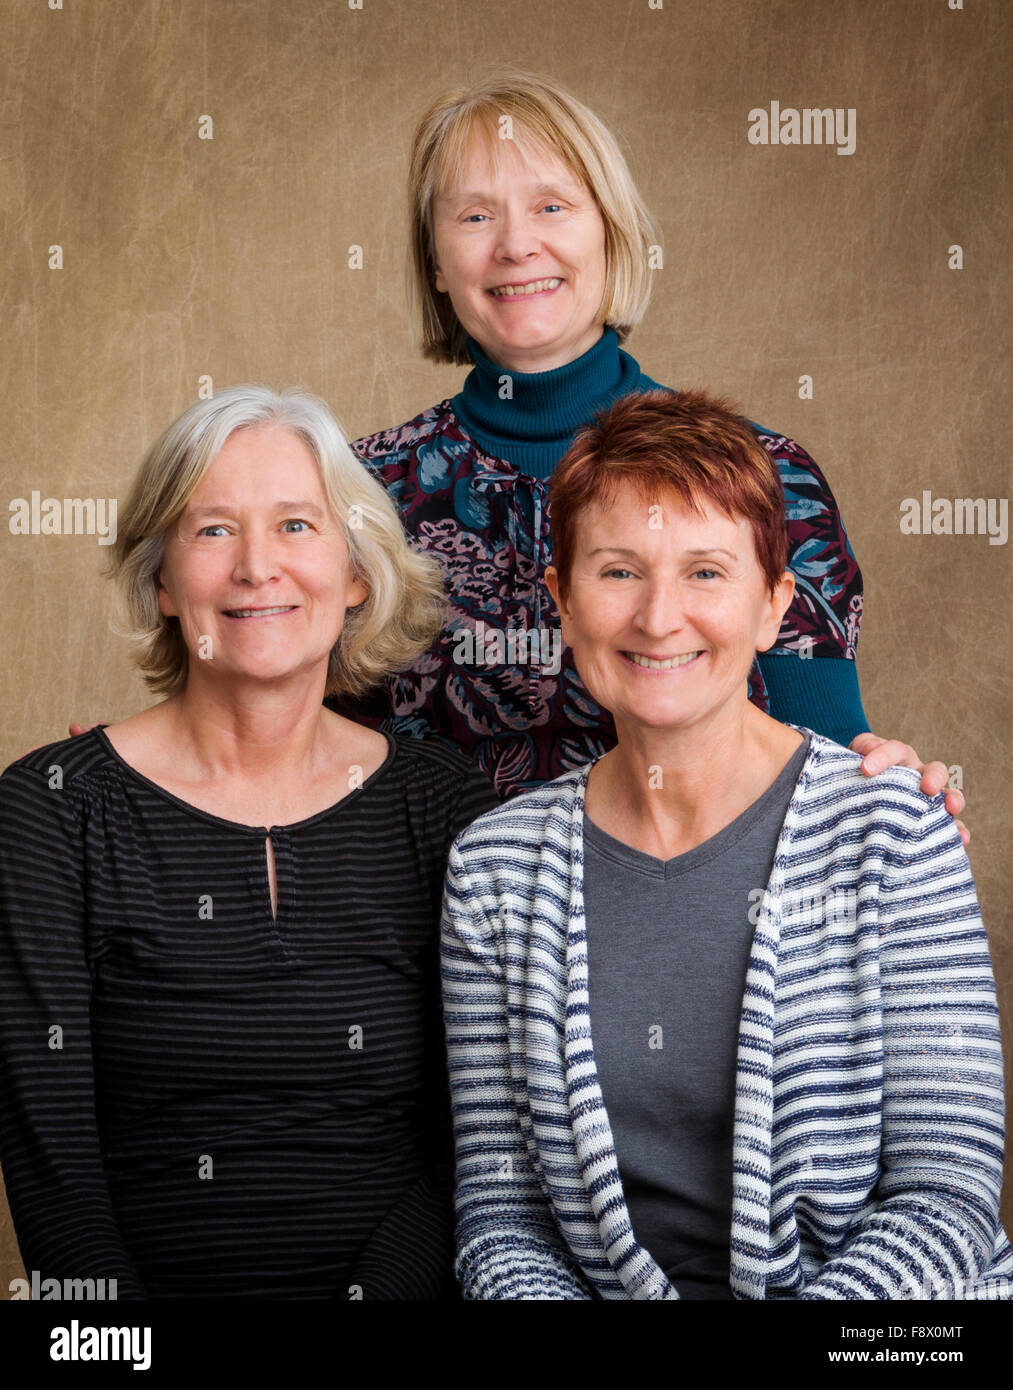 Studio photograph of three middle-aged female sisters - Stock Image